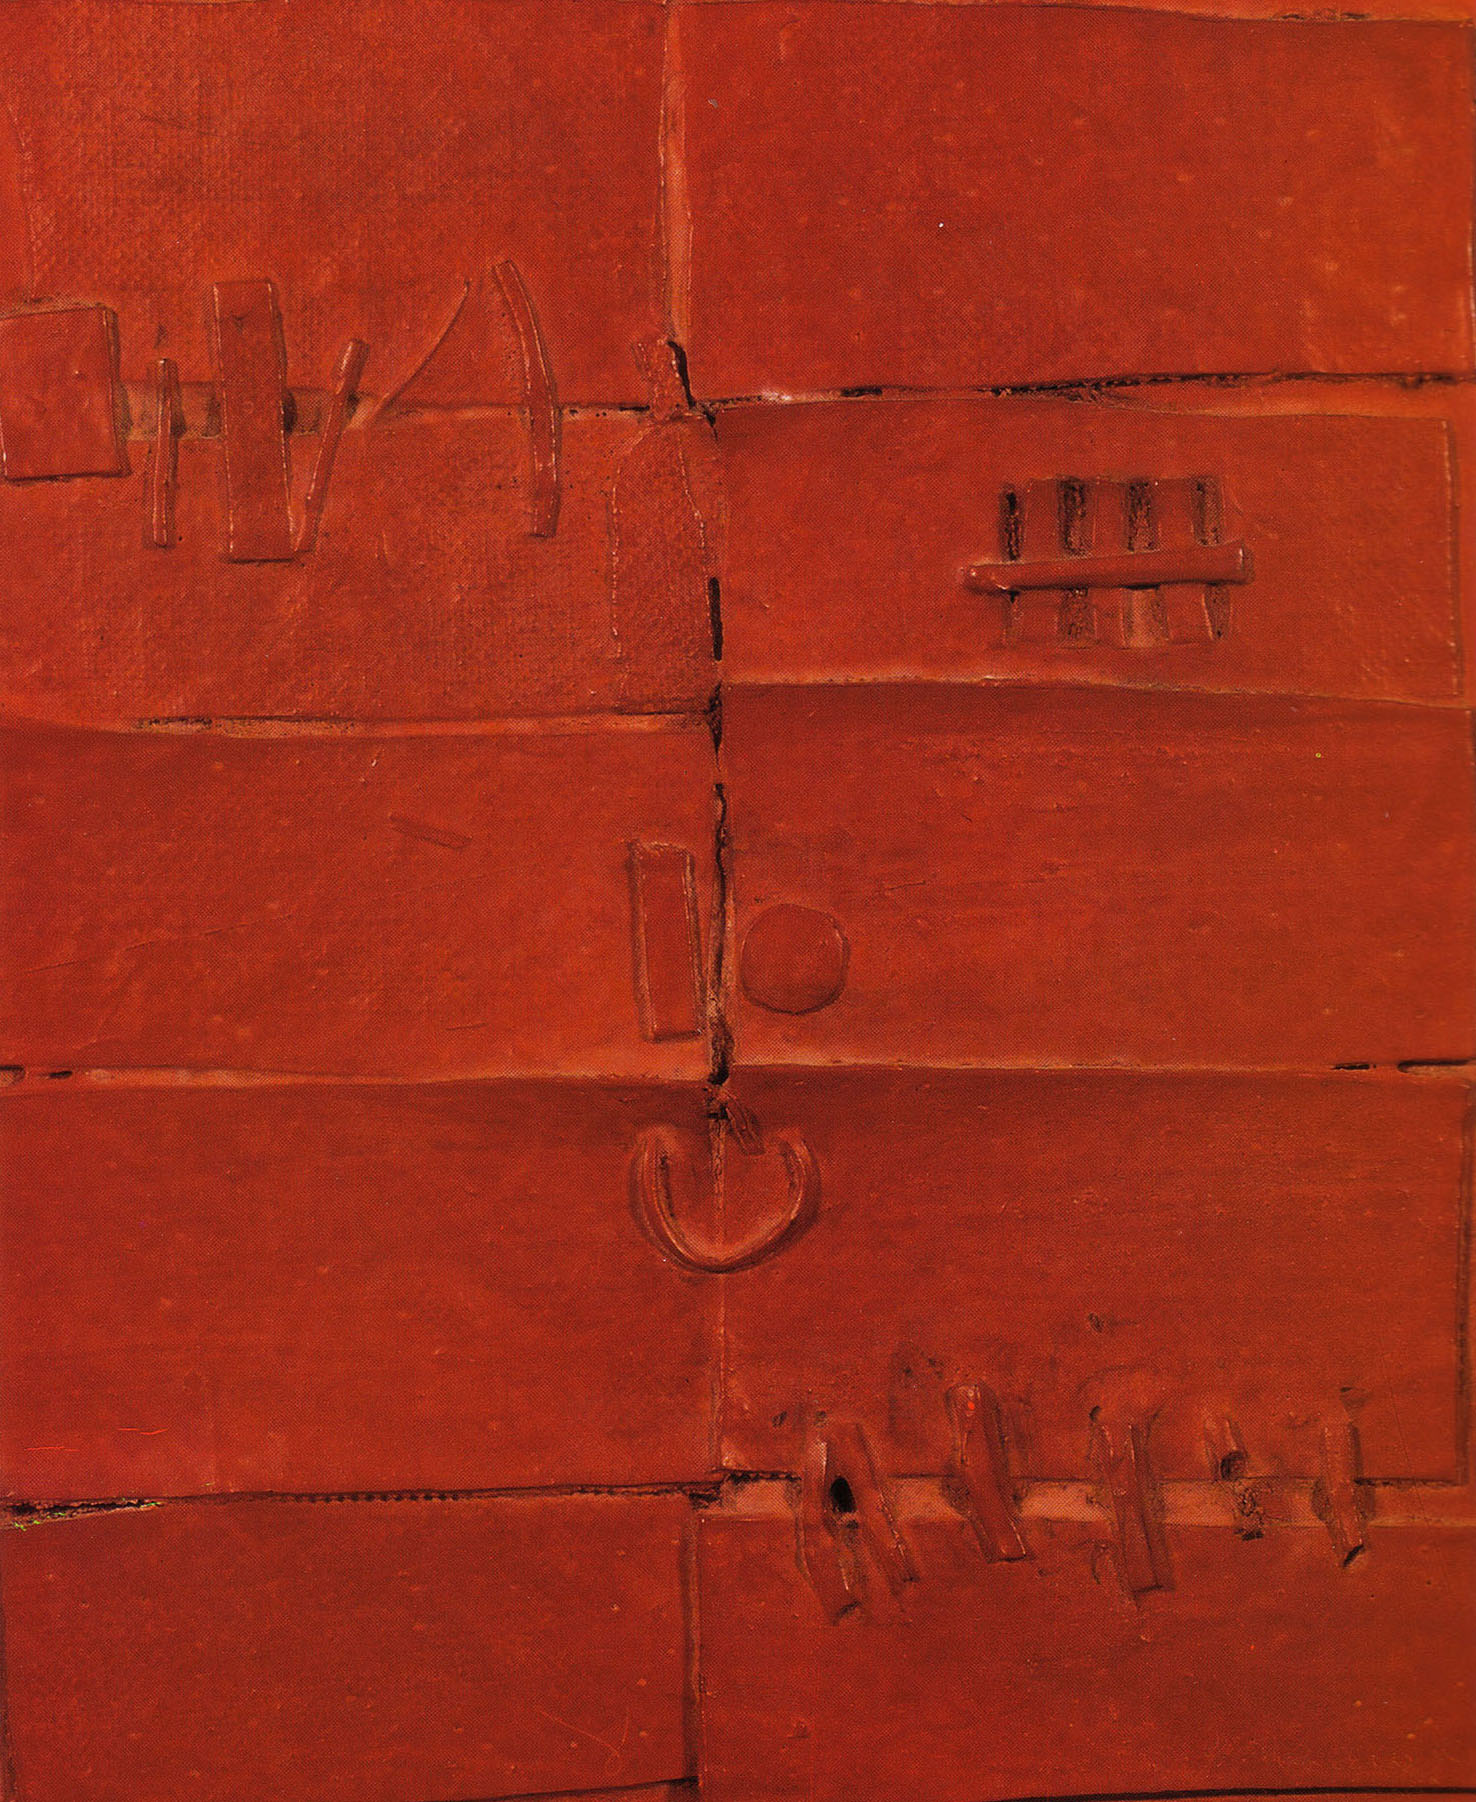 Door, 1961, mixed media on canvas, cm 28 x 24